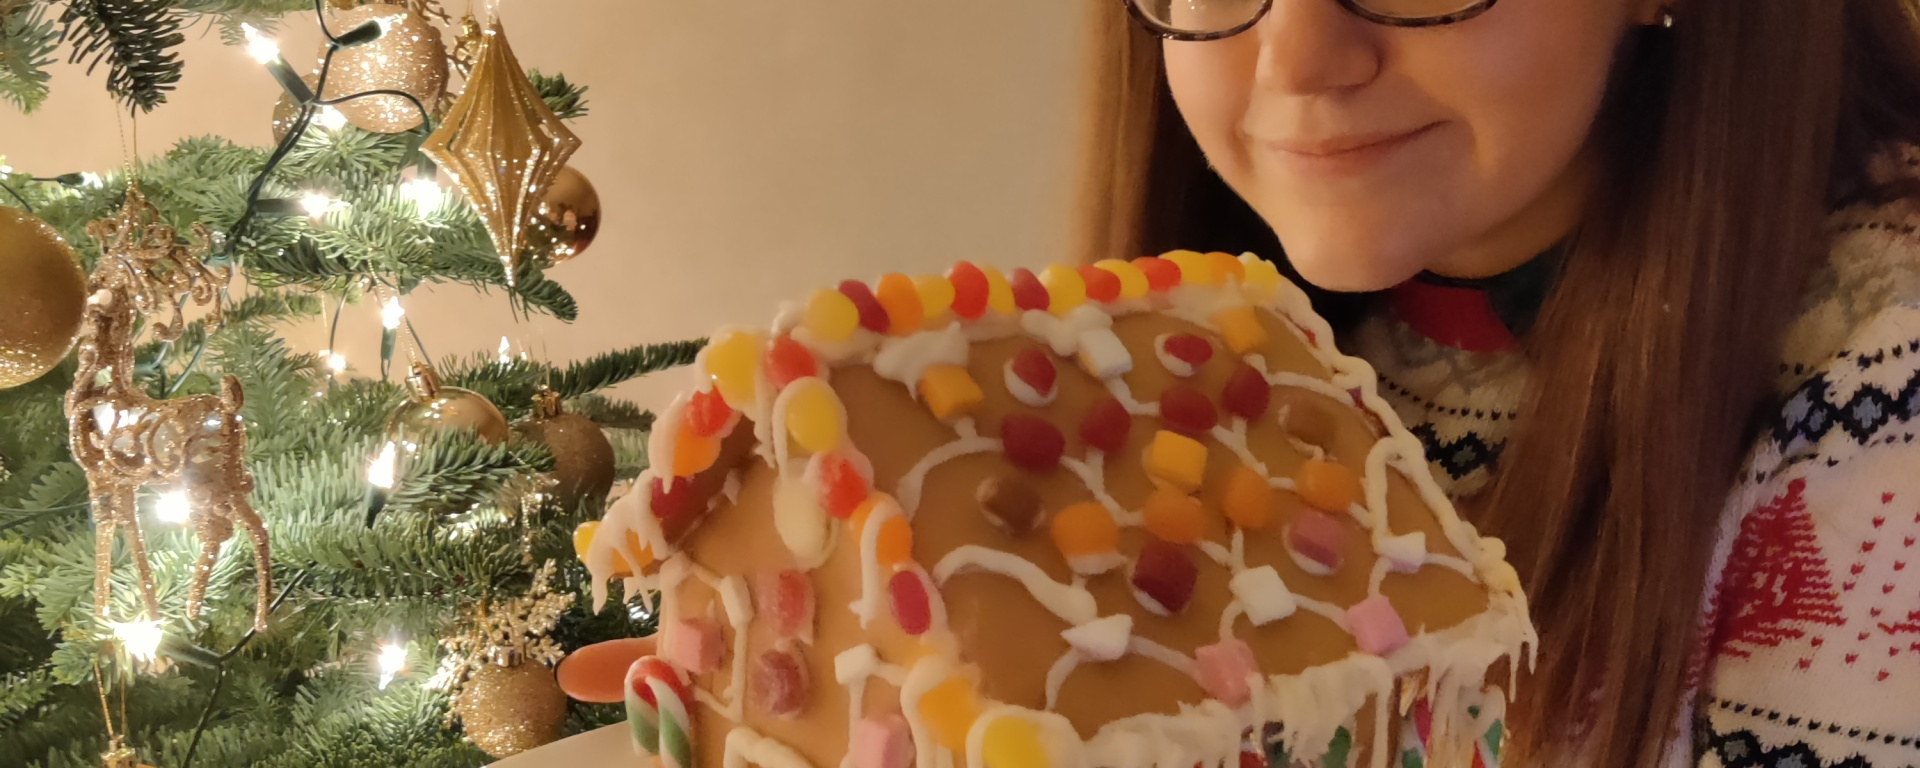 Girl holding a decorated gingerbread house in front of a lit Christmas tree.